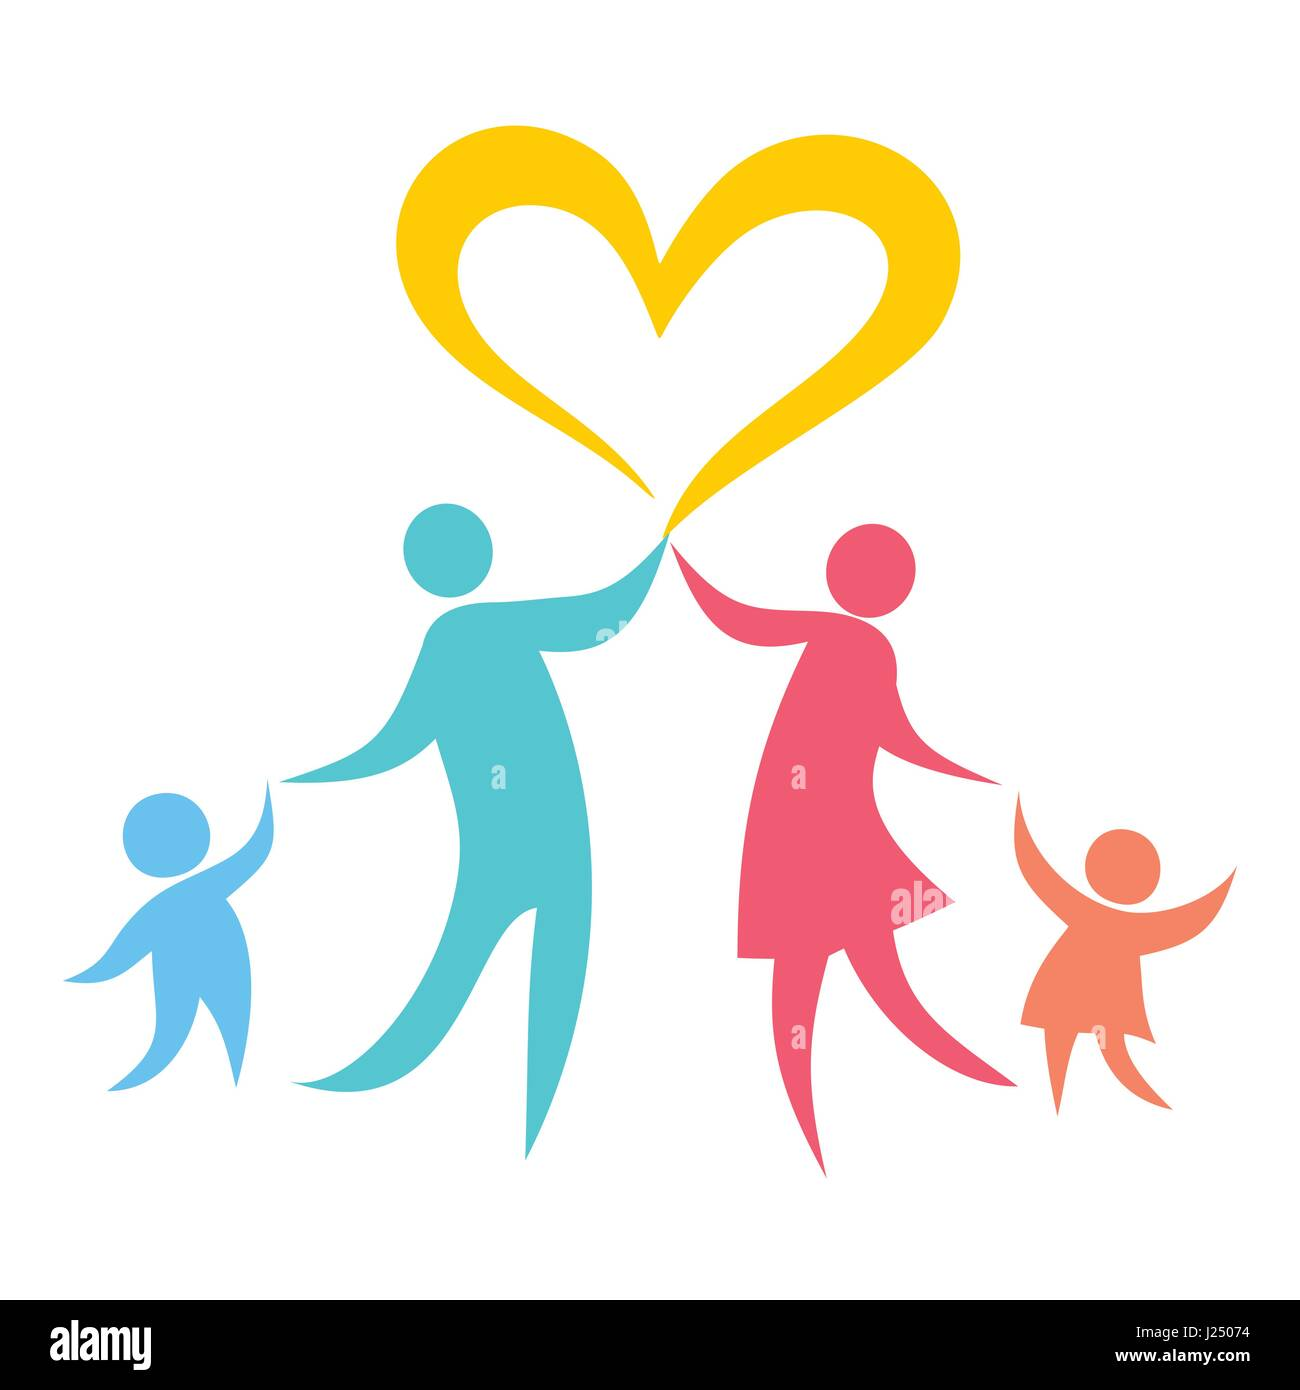 Godly Love For Each Other: A Happy Christian Family Based On Love For Each Other And